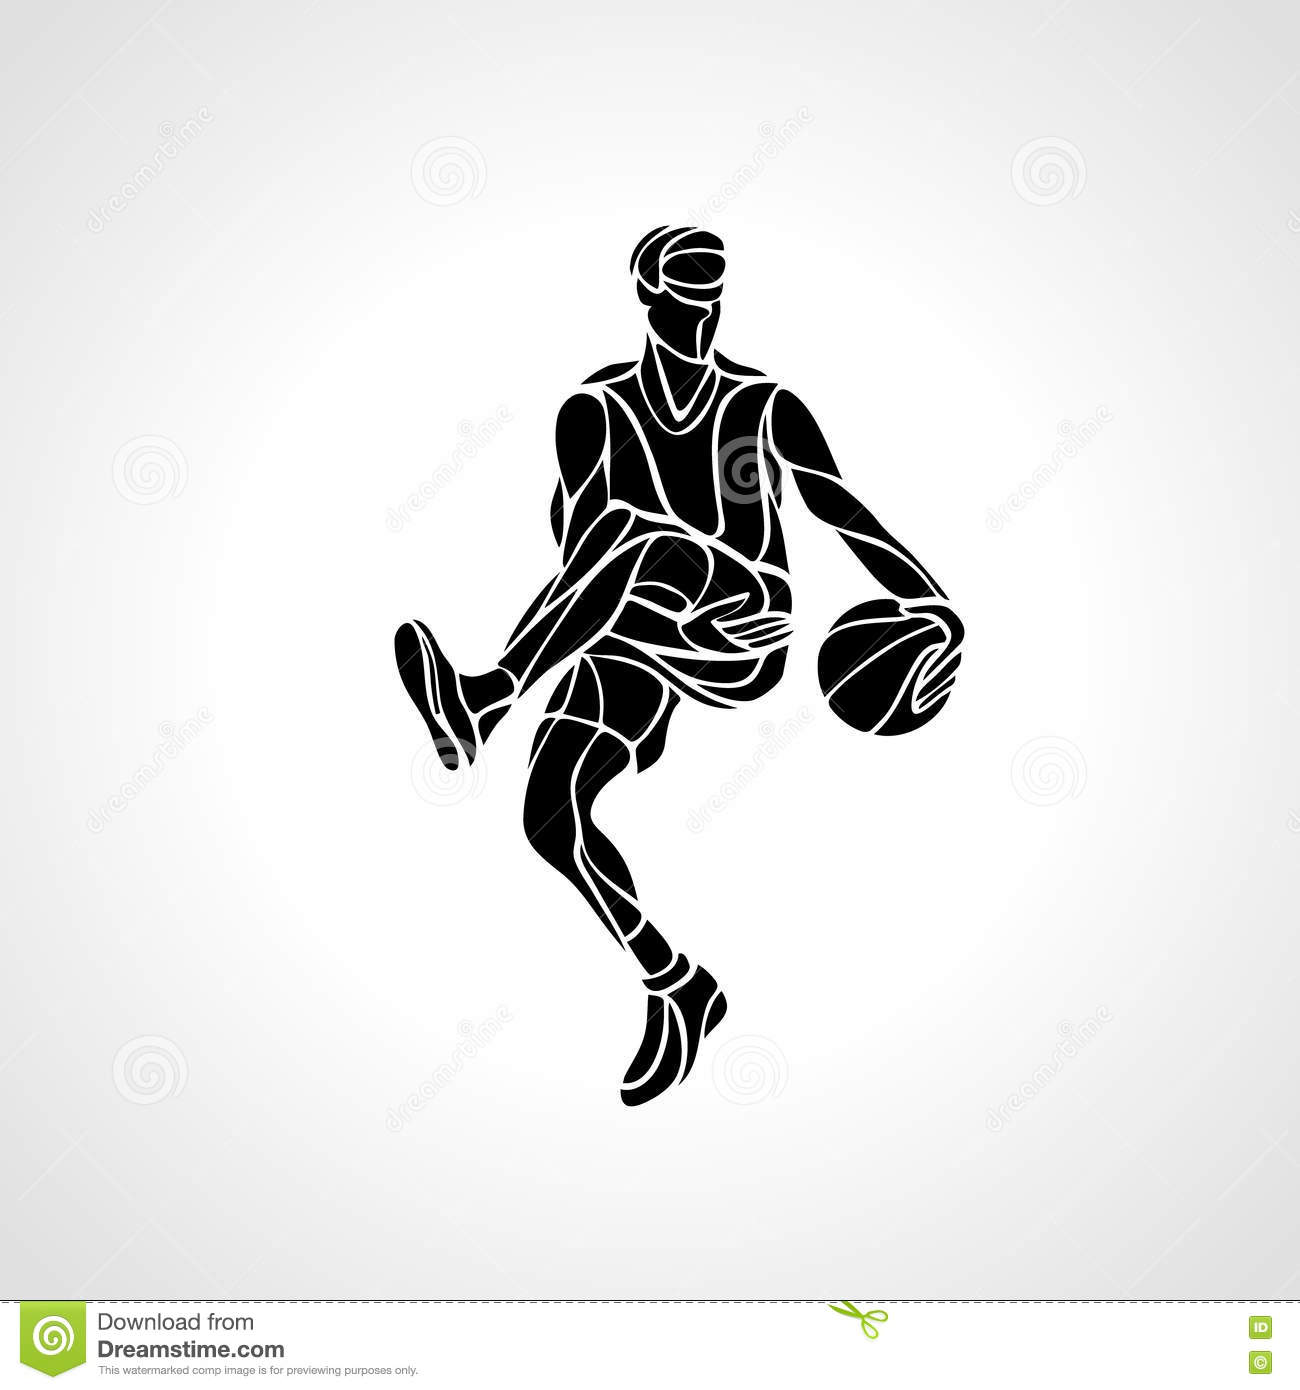 Basketball Player Abstract Silhouette Stock Vector - Image ...